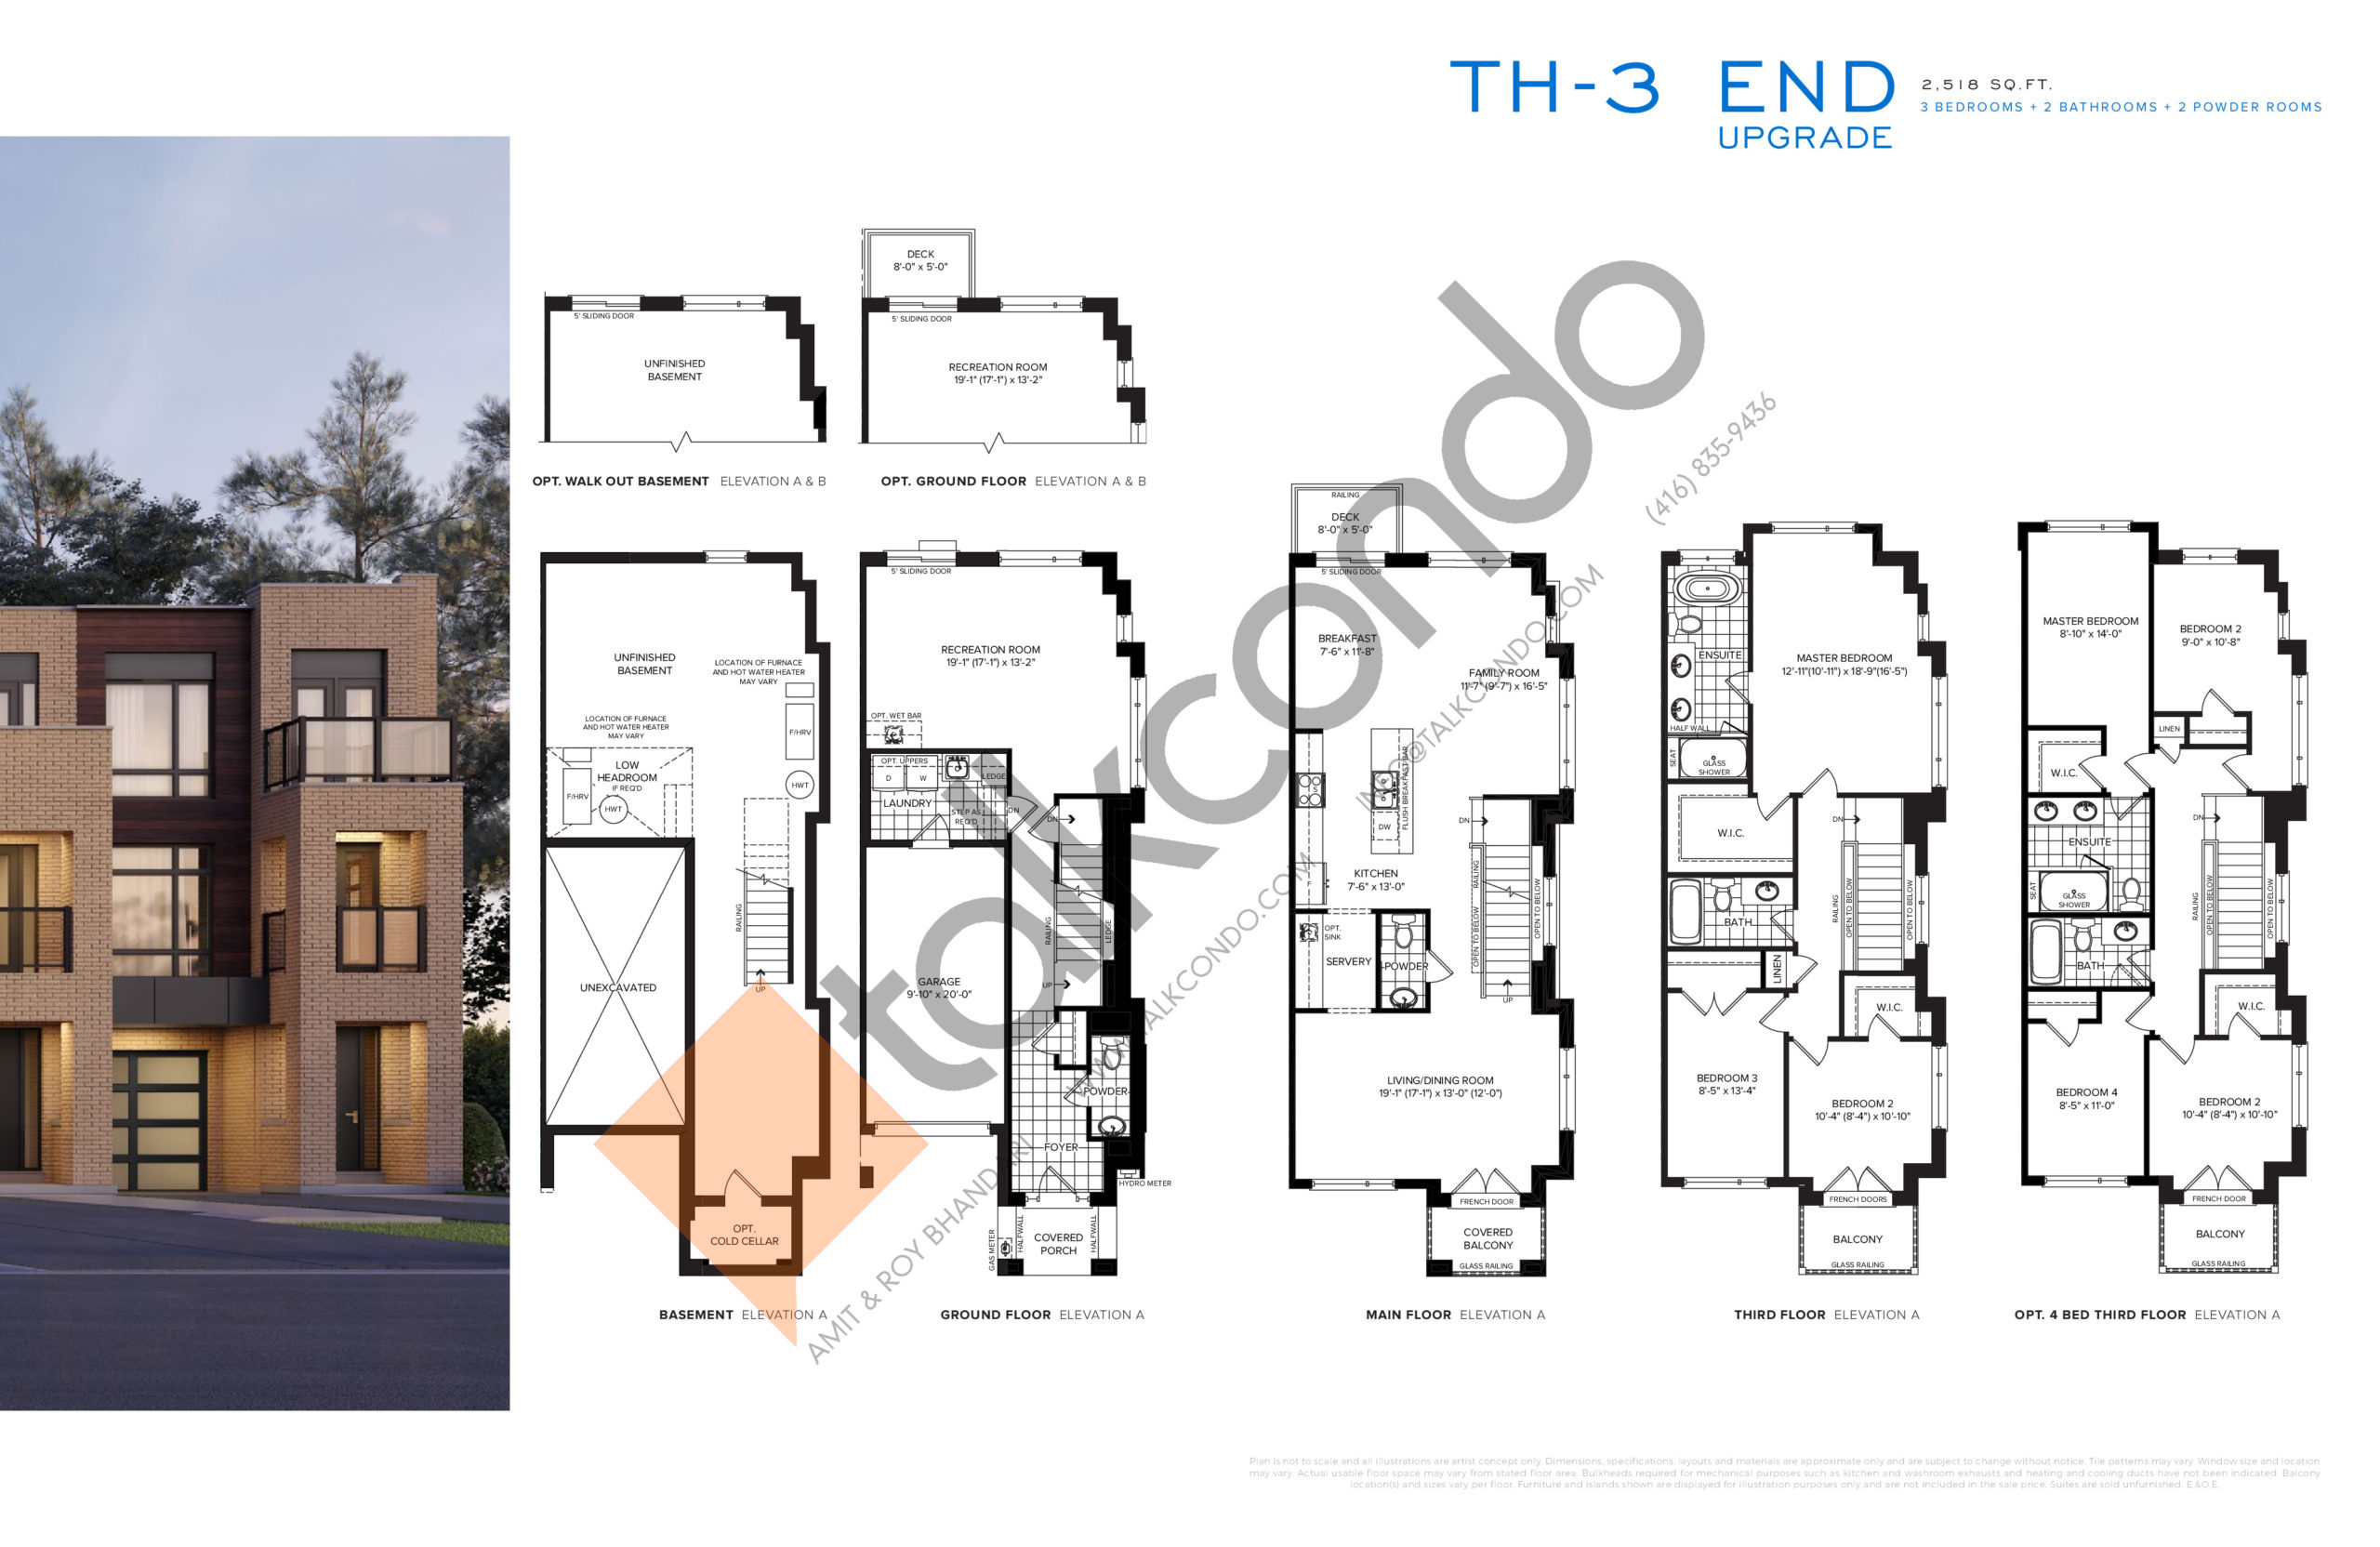 TH-3 End Upgrade Floor Plan at SXSW Ravine Towns - 2518 sq.ft